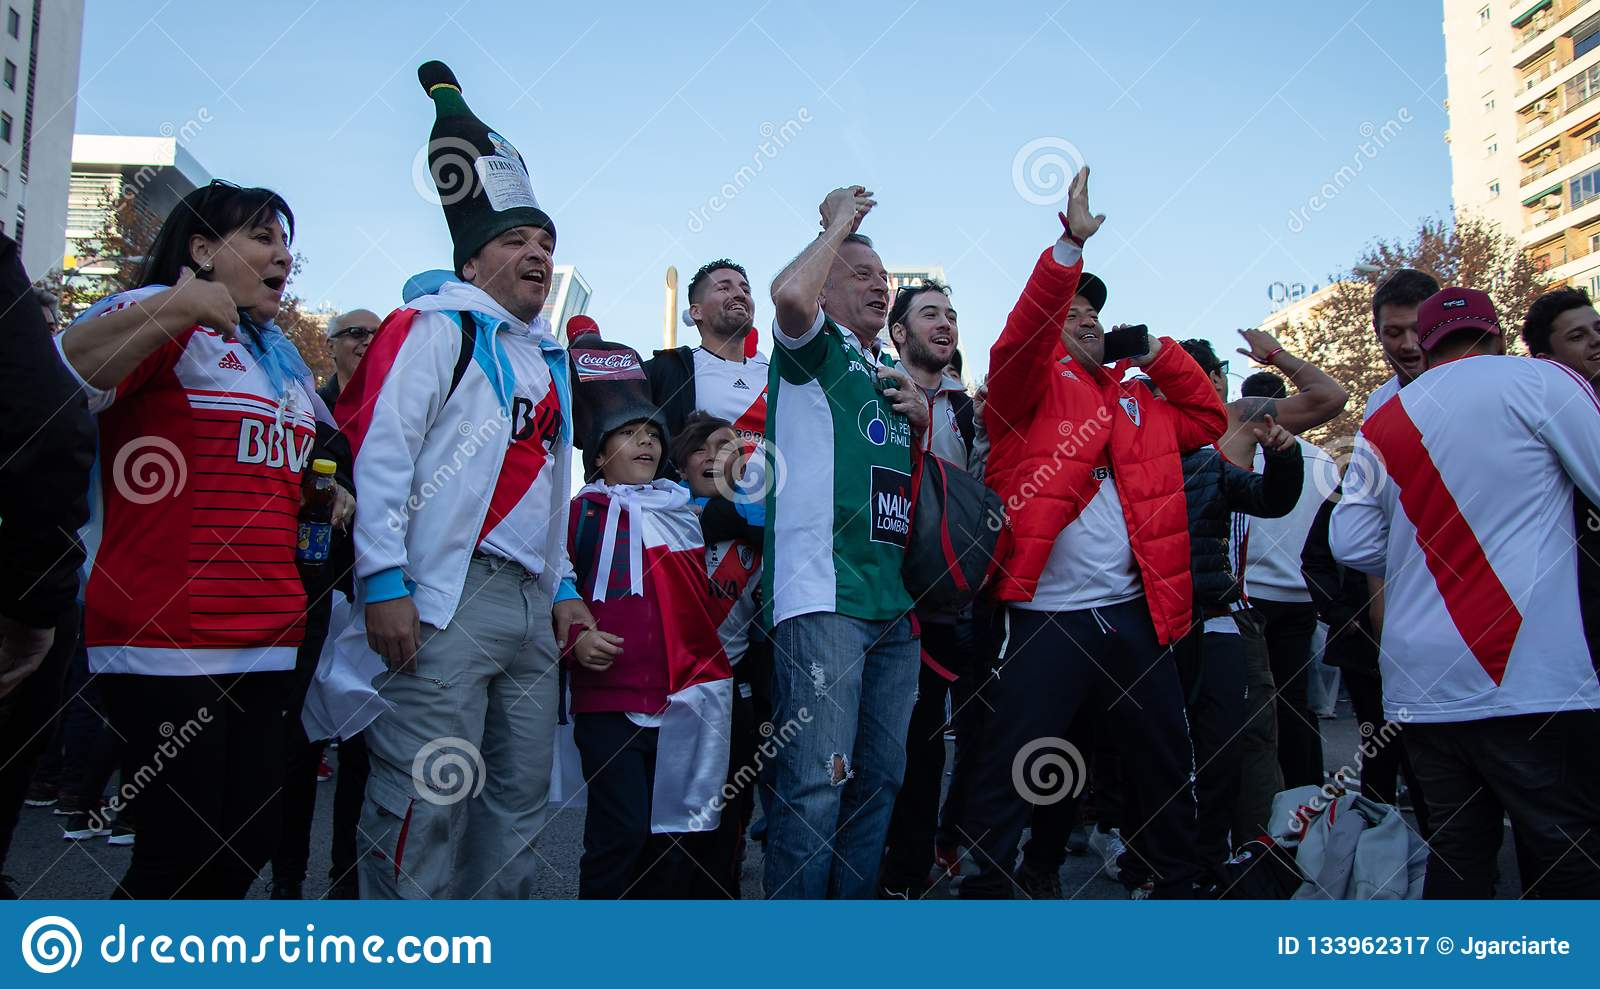 MADRID, DECEMBER 09 - Young and old supporters of River Plate before entering the final of the Copa Libertadores at the Bernabéu